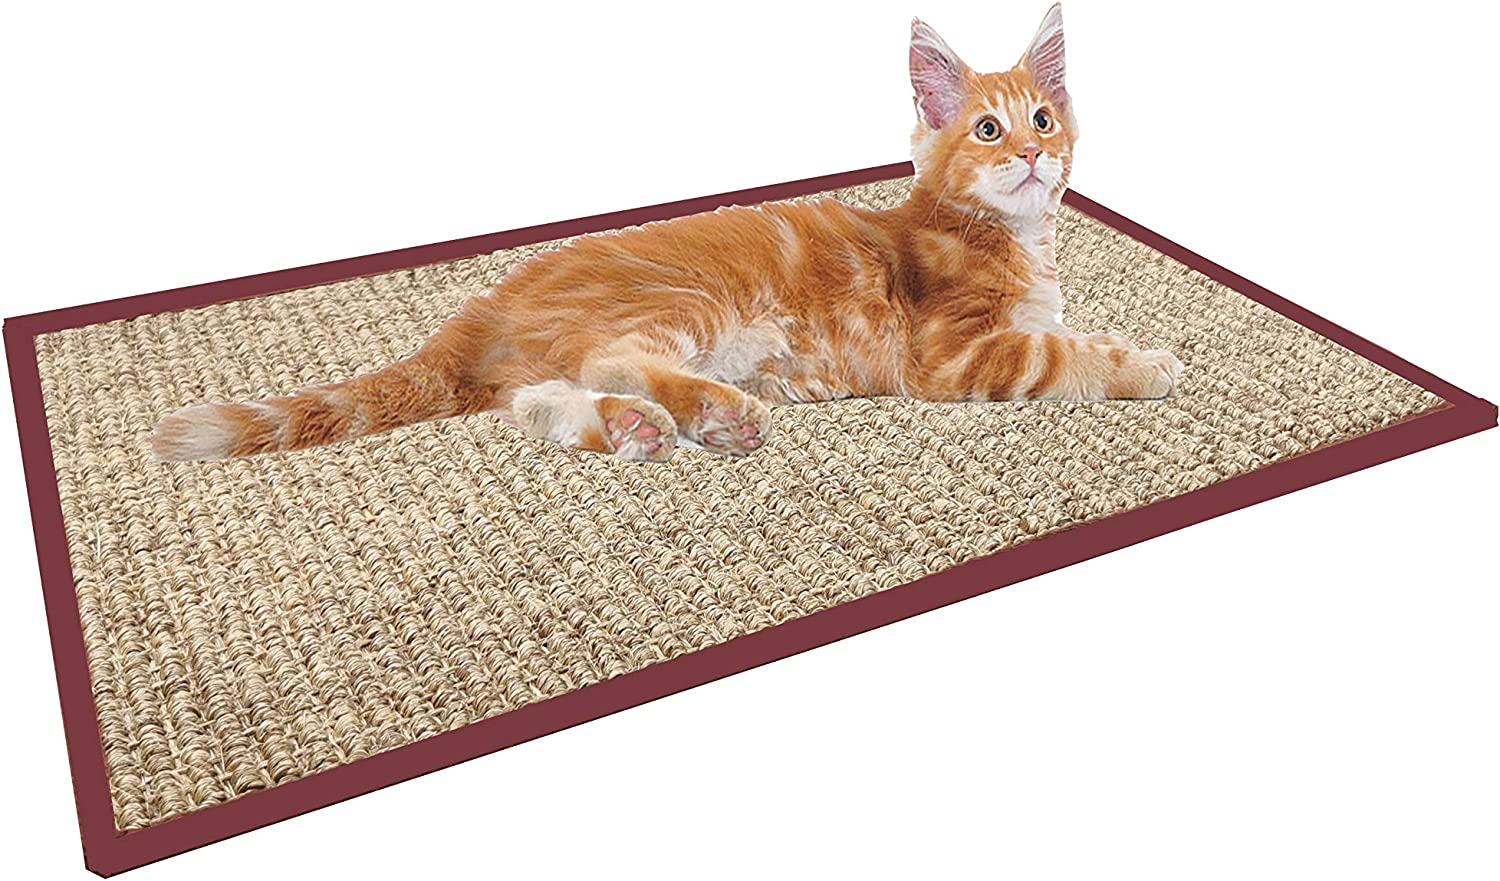 Treasborn Durable Cat Scratcher Thick Sisal Scratching Pad for Cats Anti-Slip Scratch Sleeping Mat No Mess Furniture Protecter Natural for Claws